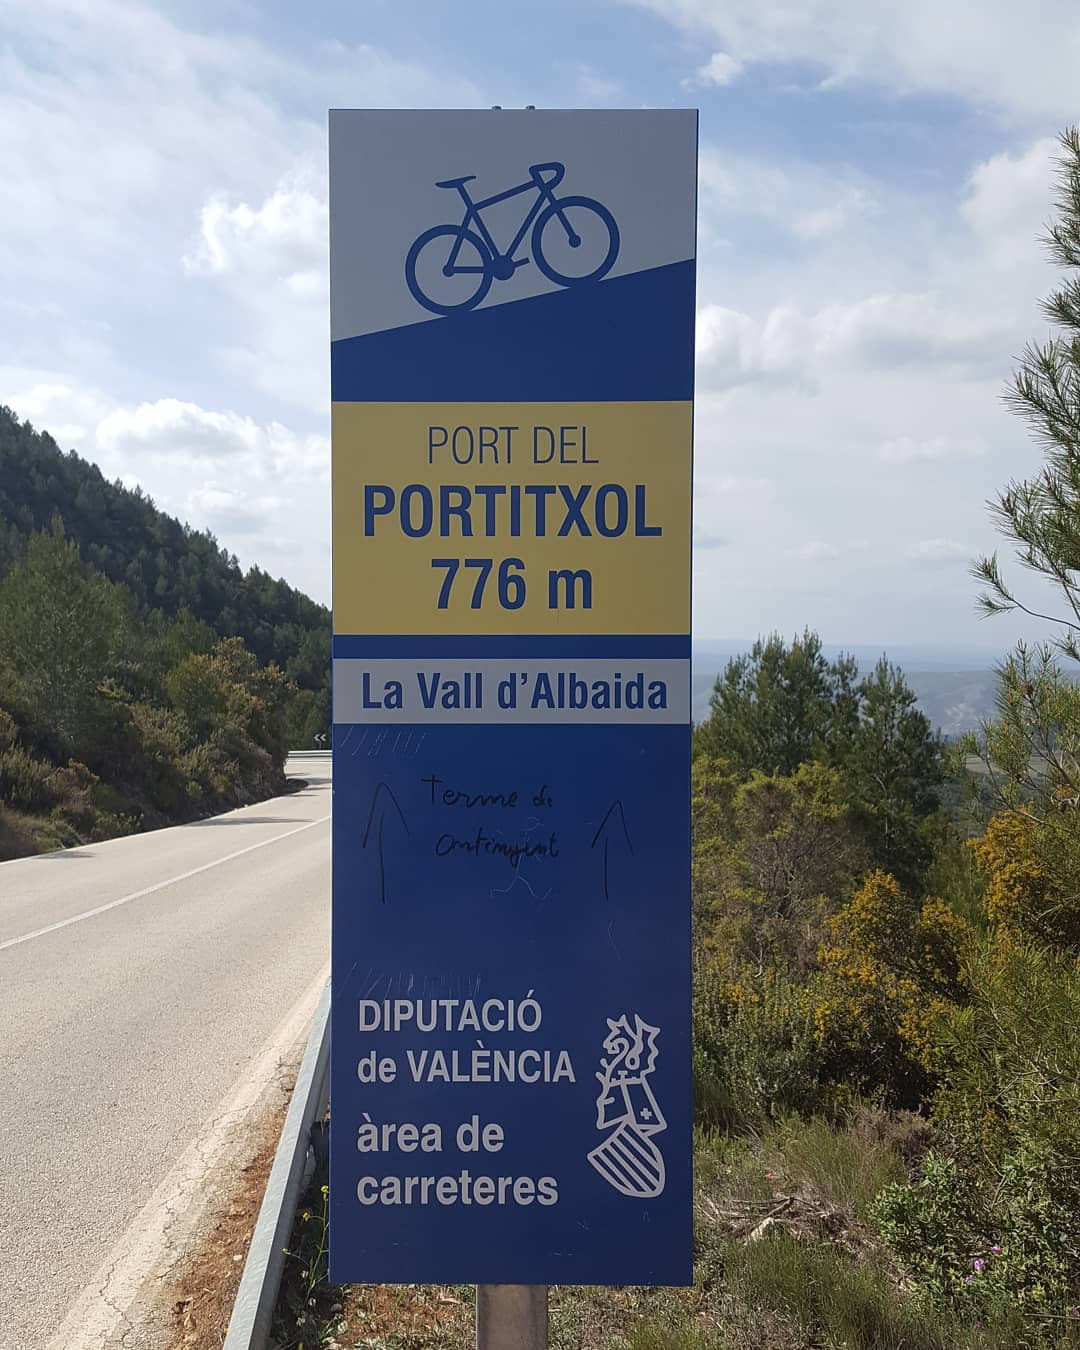 Summit of Port del Portitxol, Vall d'Albaida, Valencia, Spain